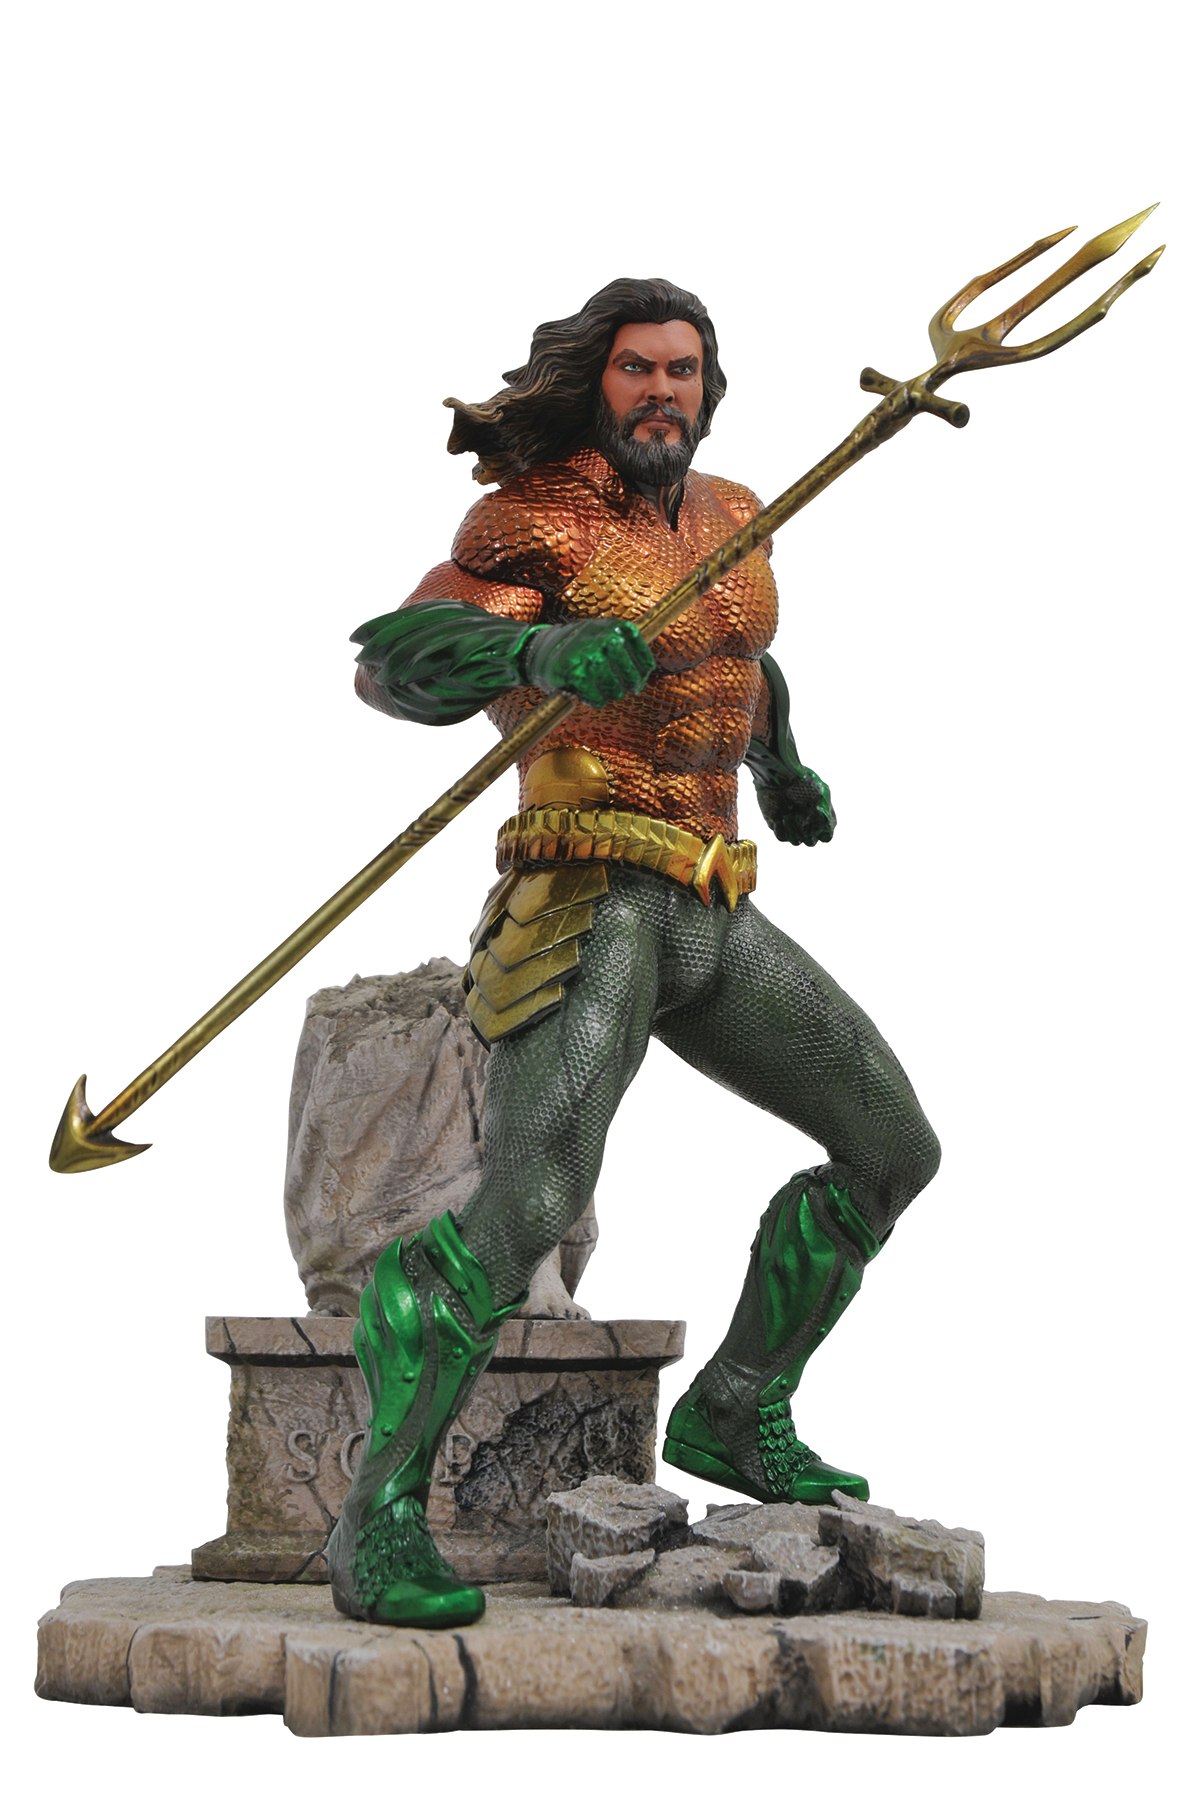 AQUAMAN MOVIE GALLERY AQUAMAN PVC FIGURE (C: 1-1-2)